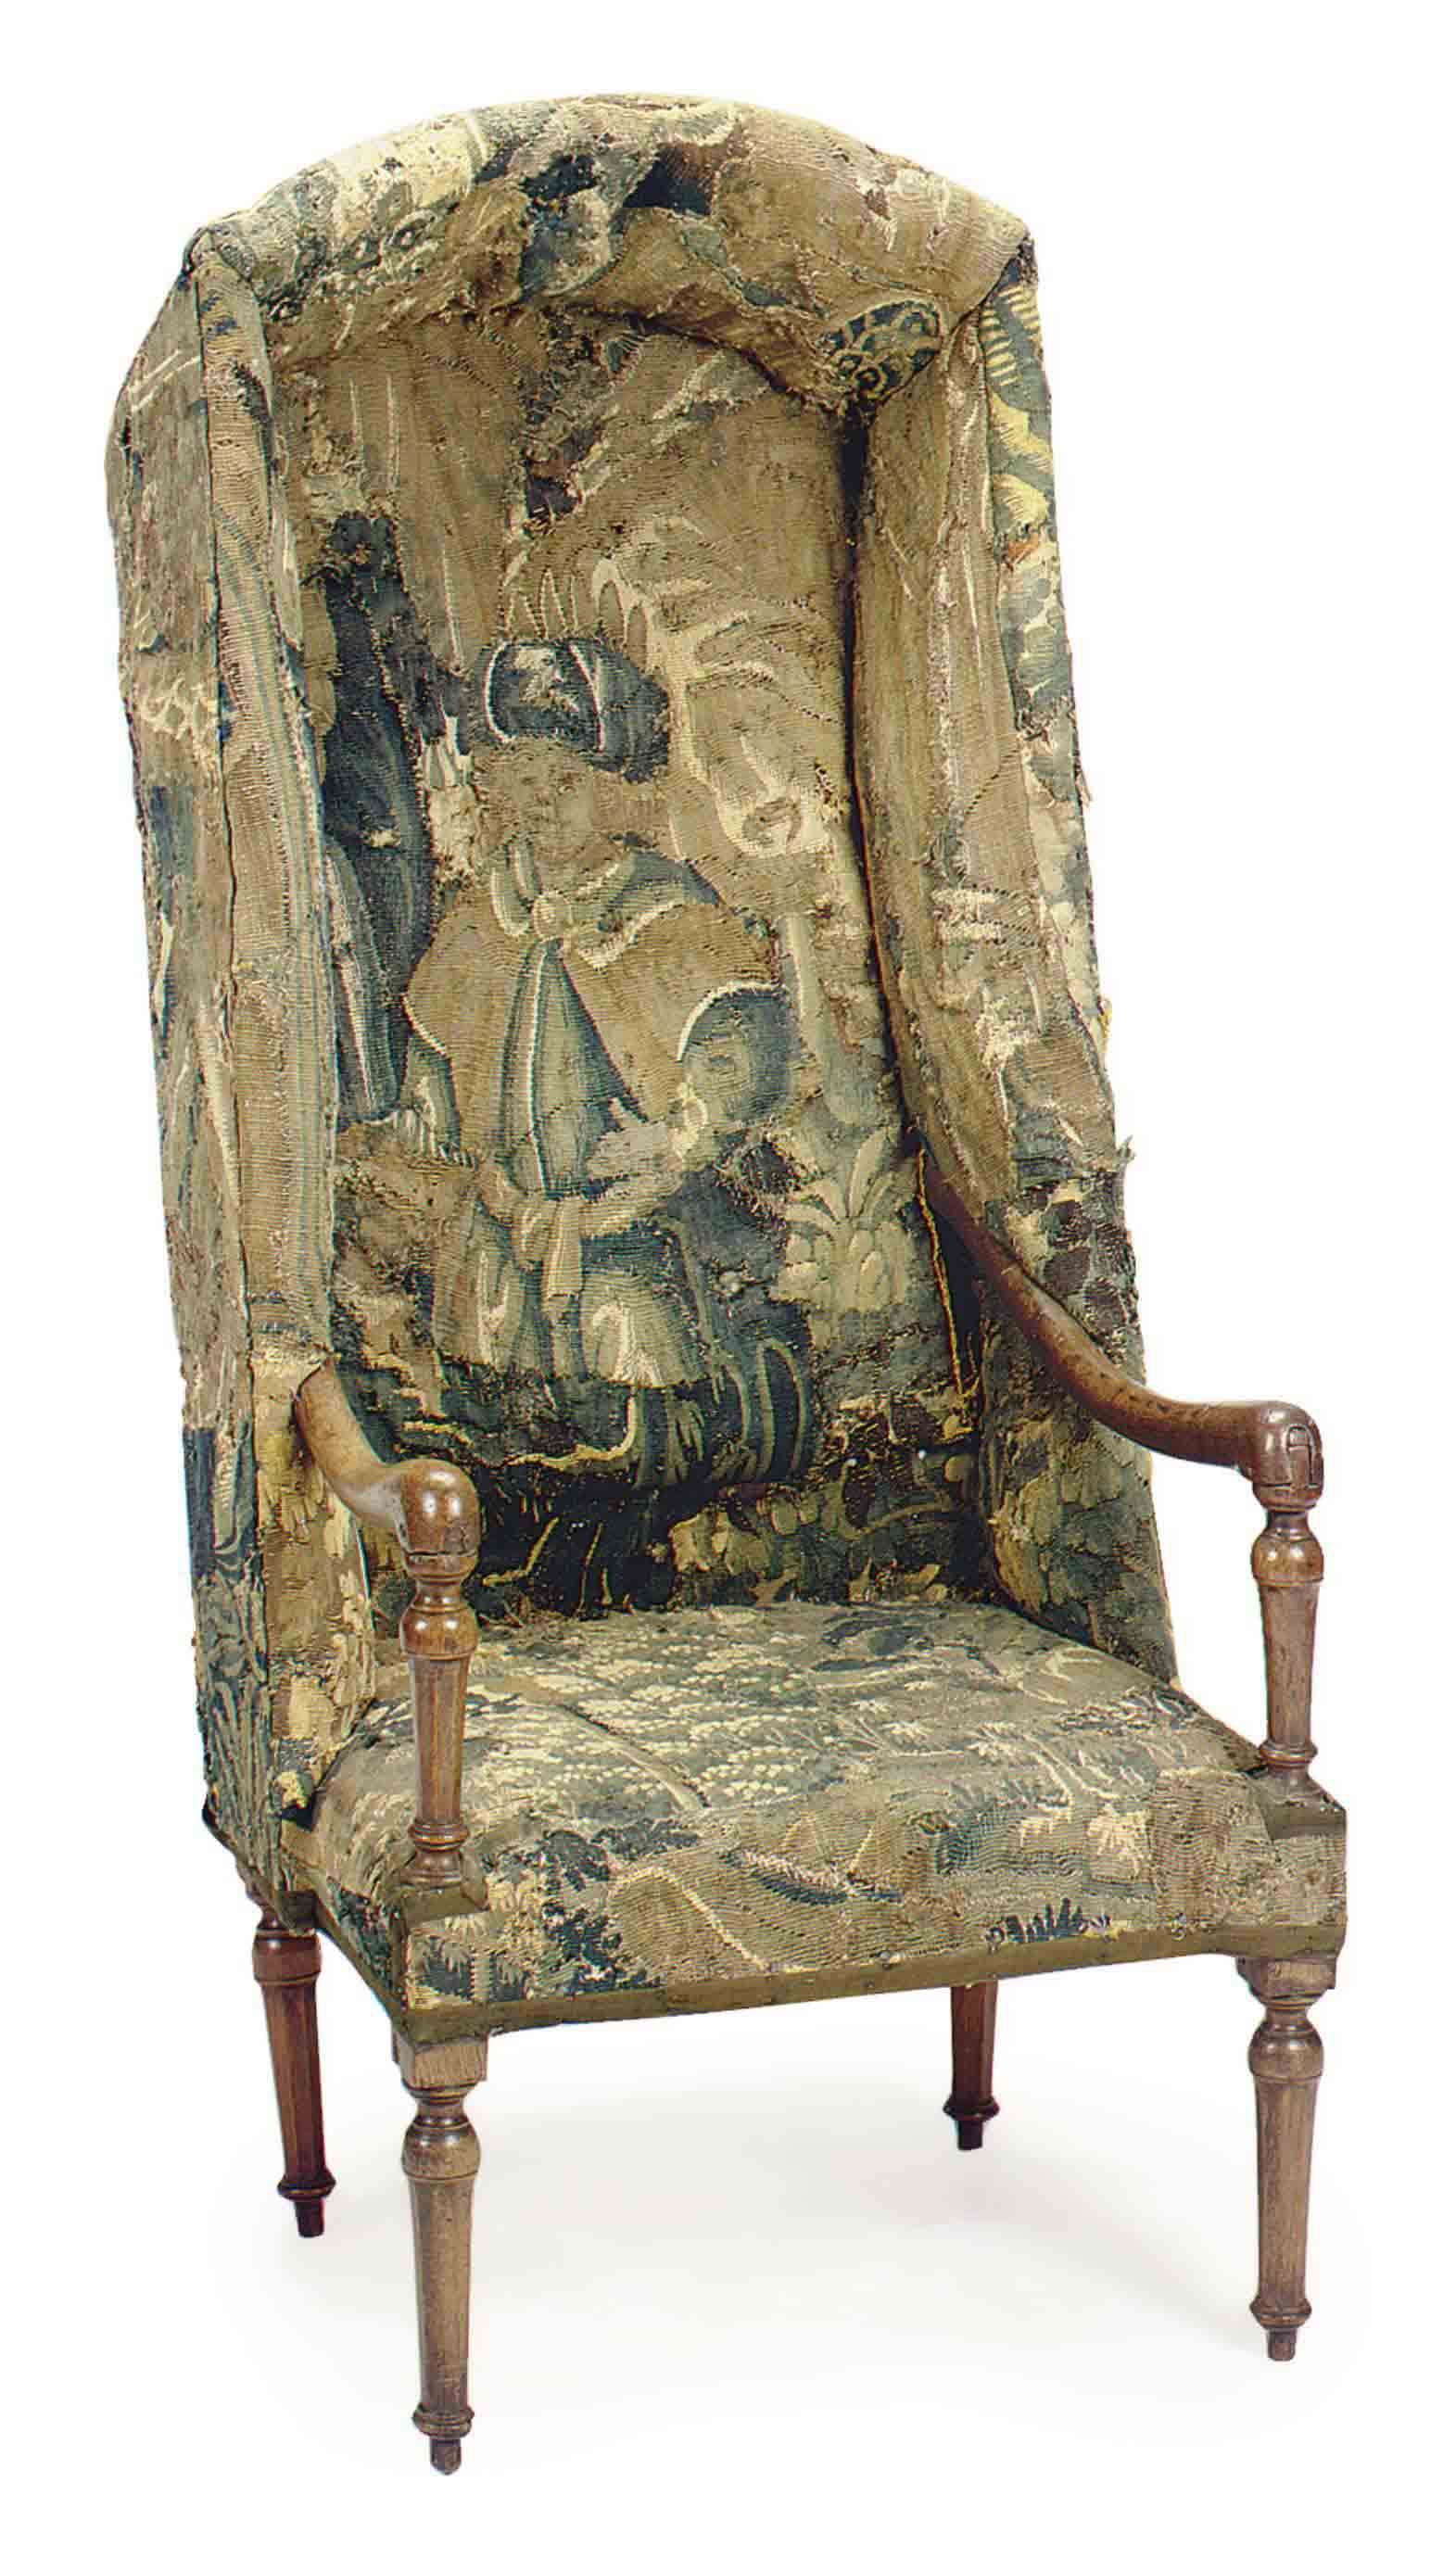 A FRENCH TAPESTRY-UPHOLSTERED WALNUT PORTER'S CHAIR,